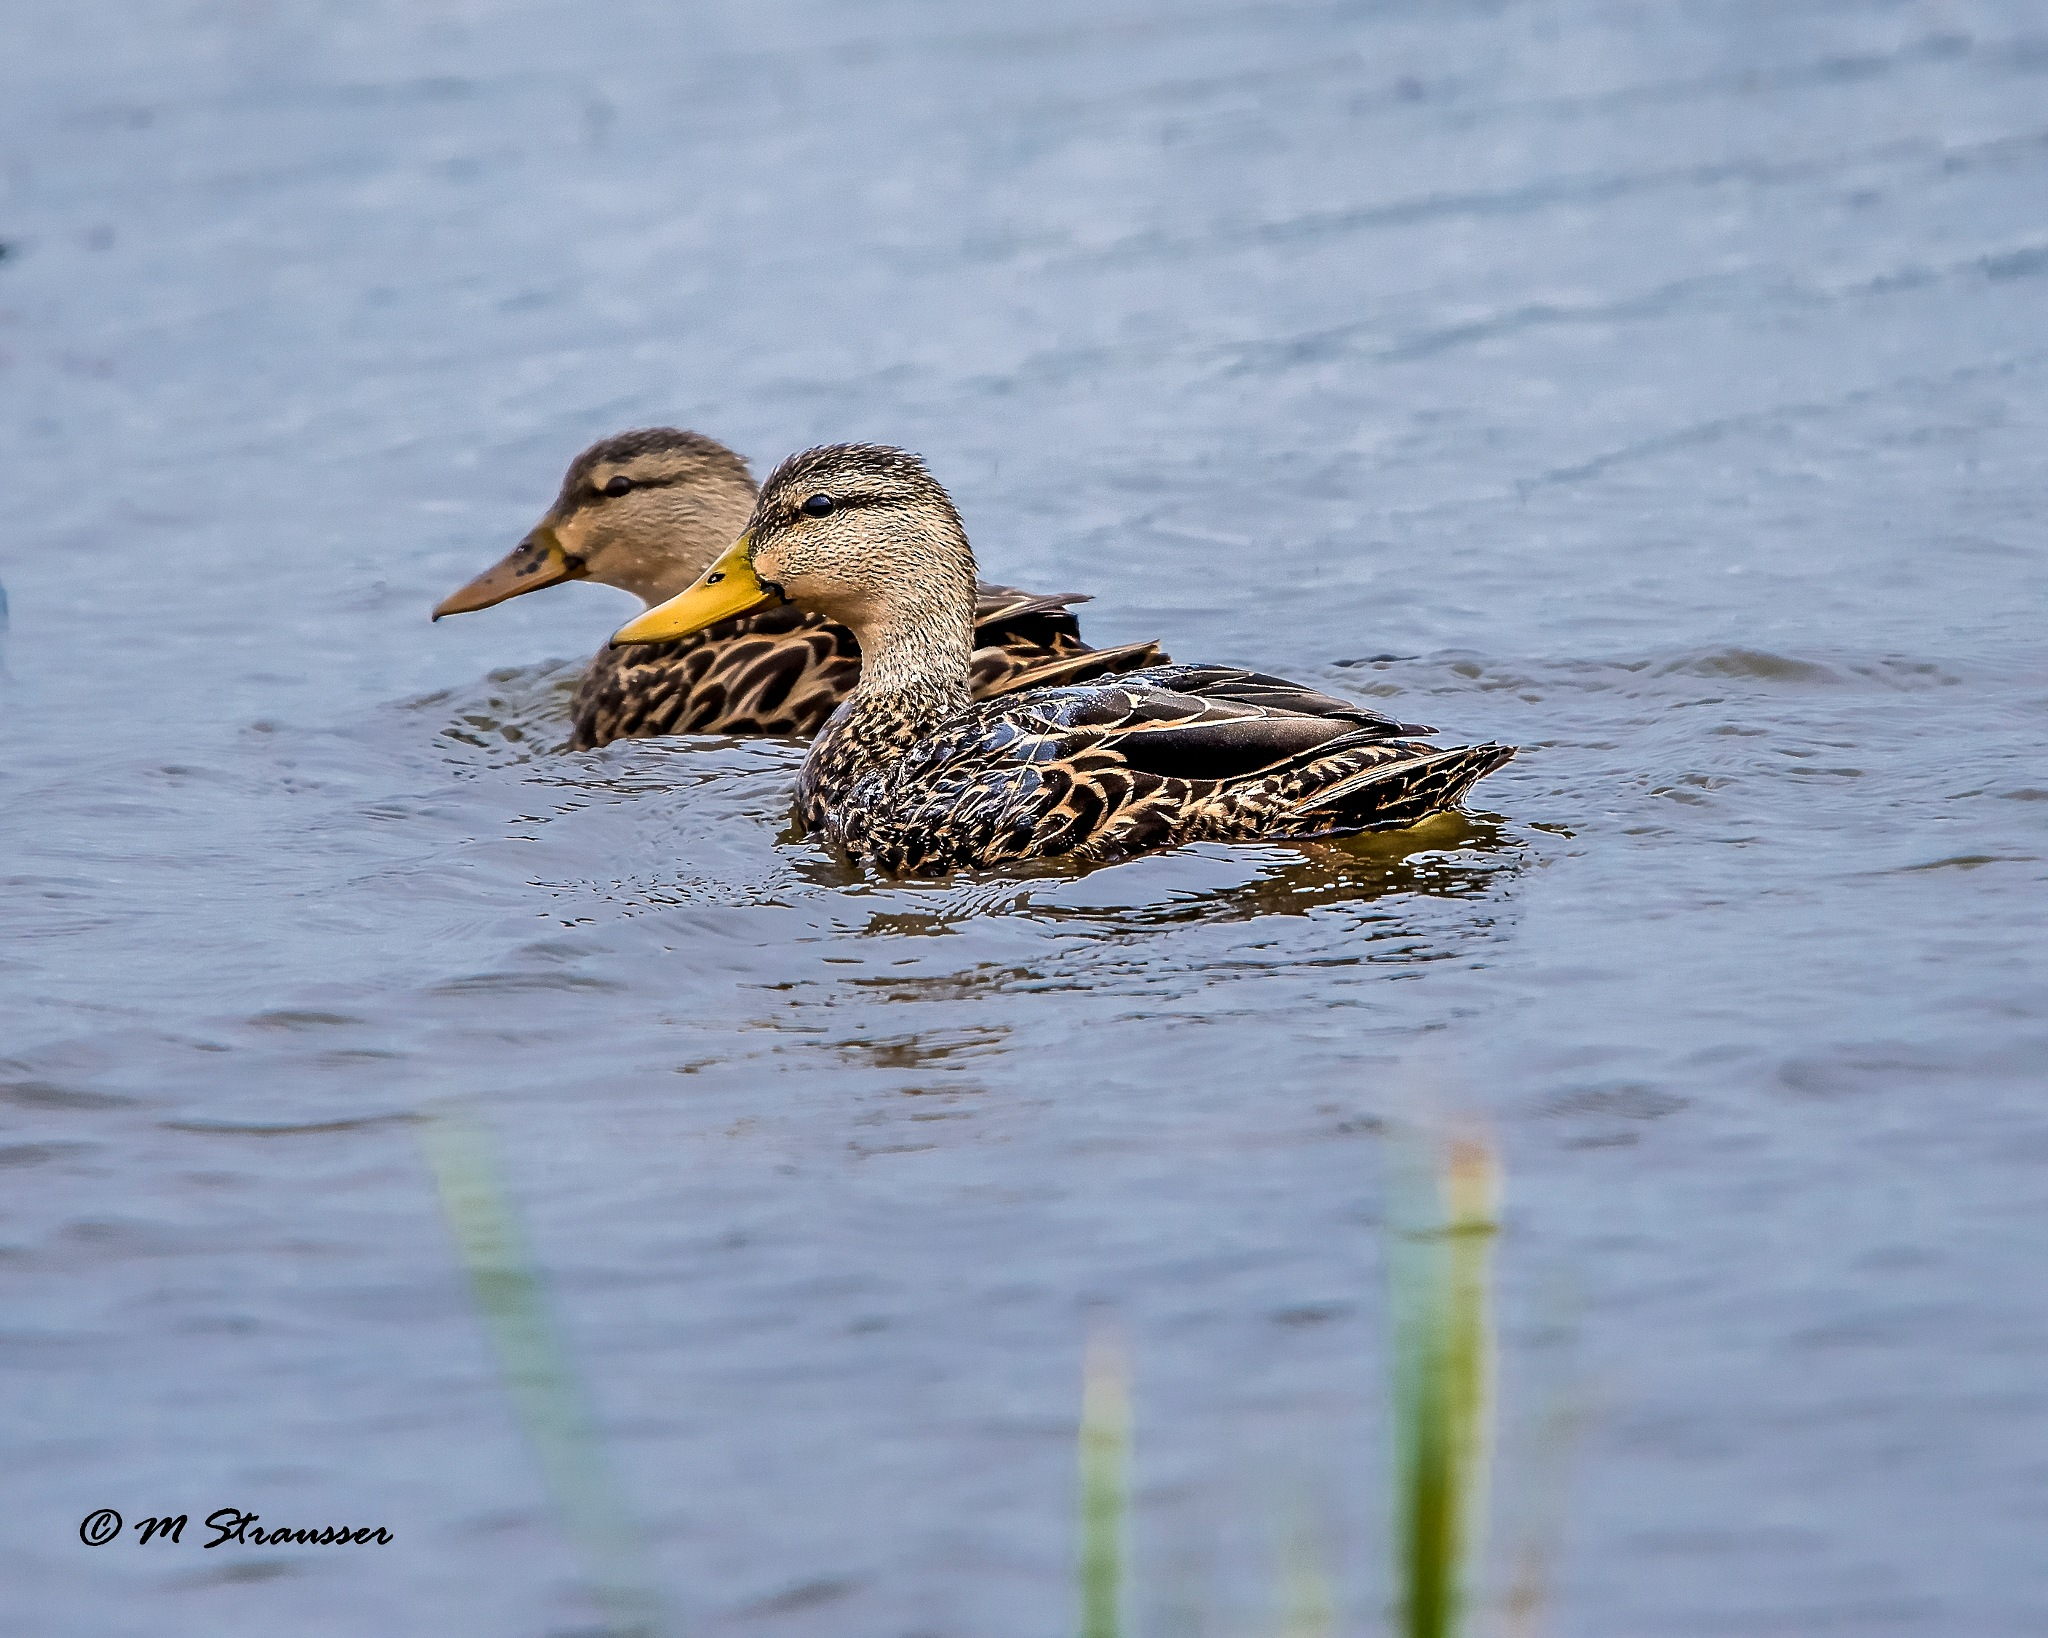 ducks by MStrausser of the iMage Shack